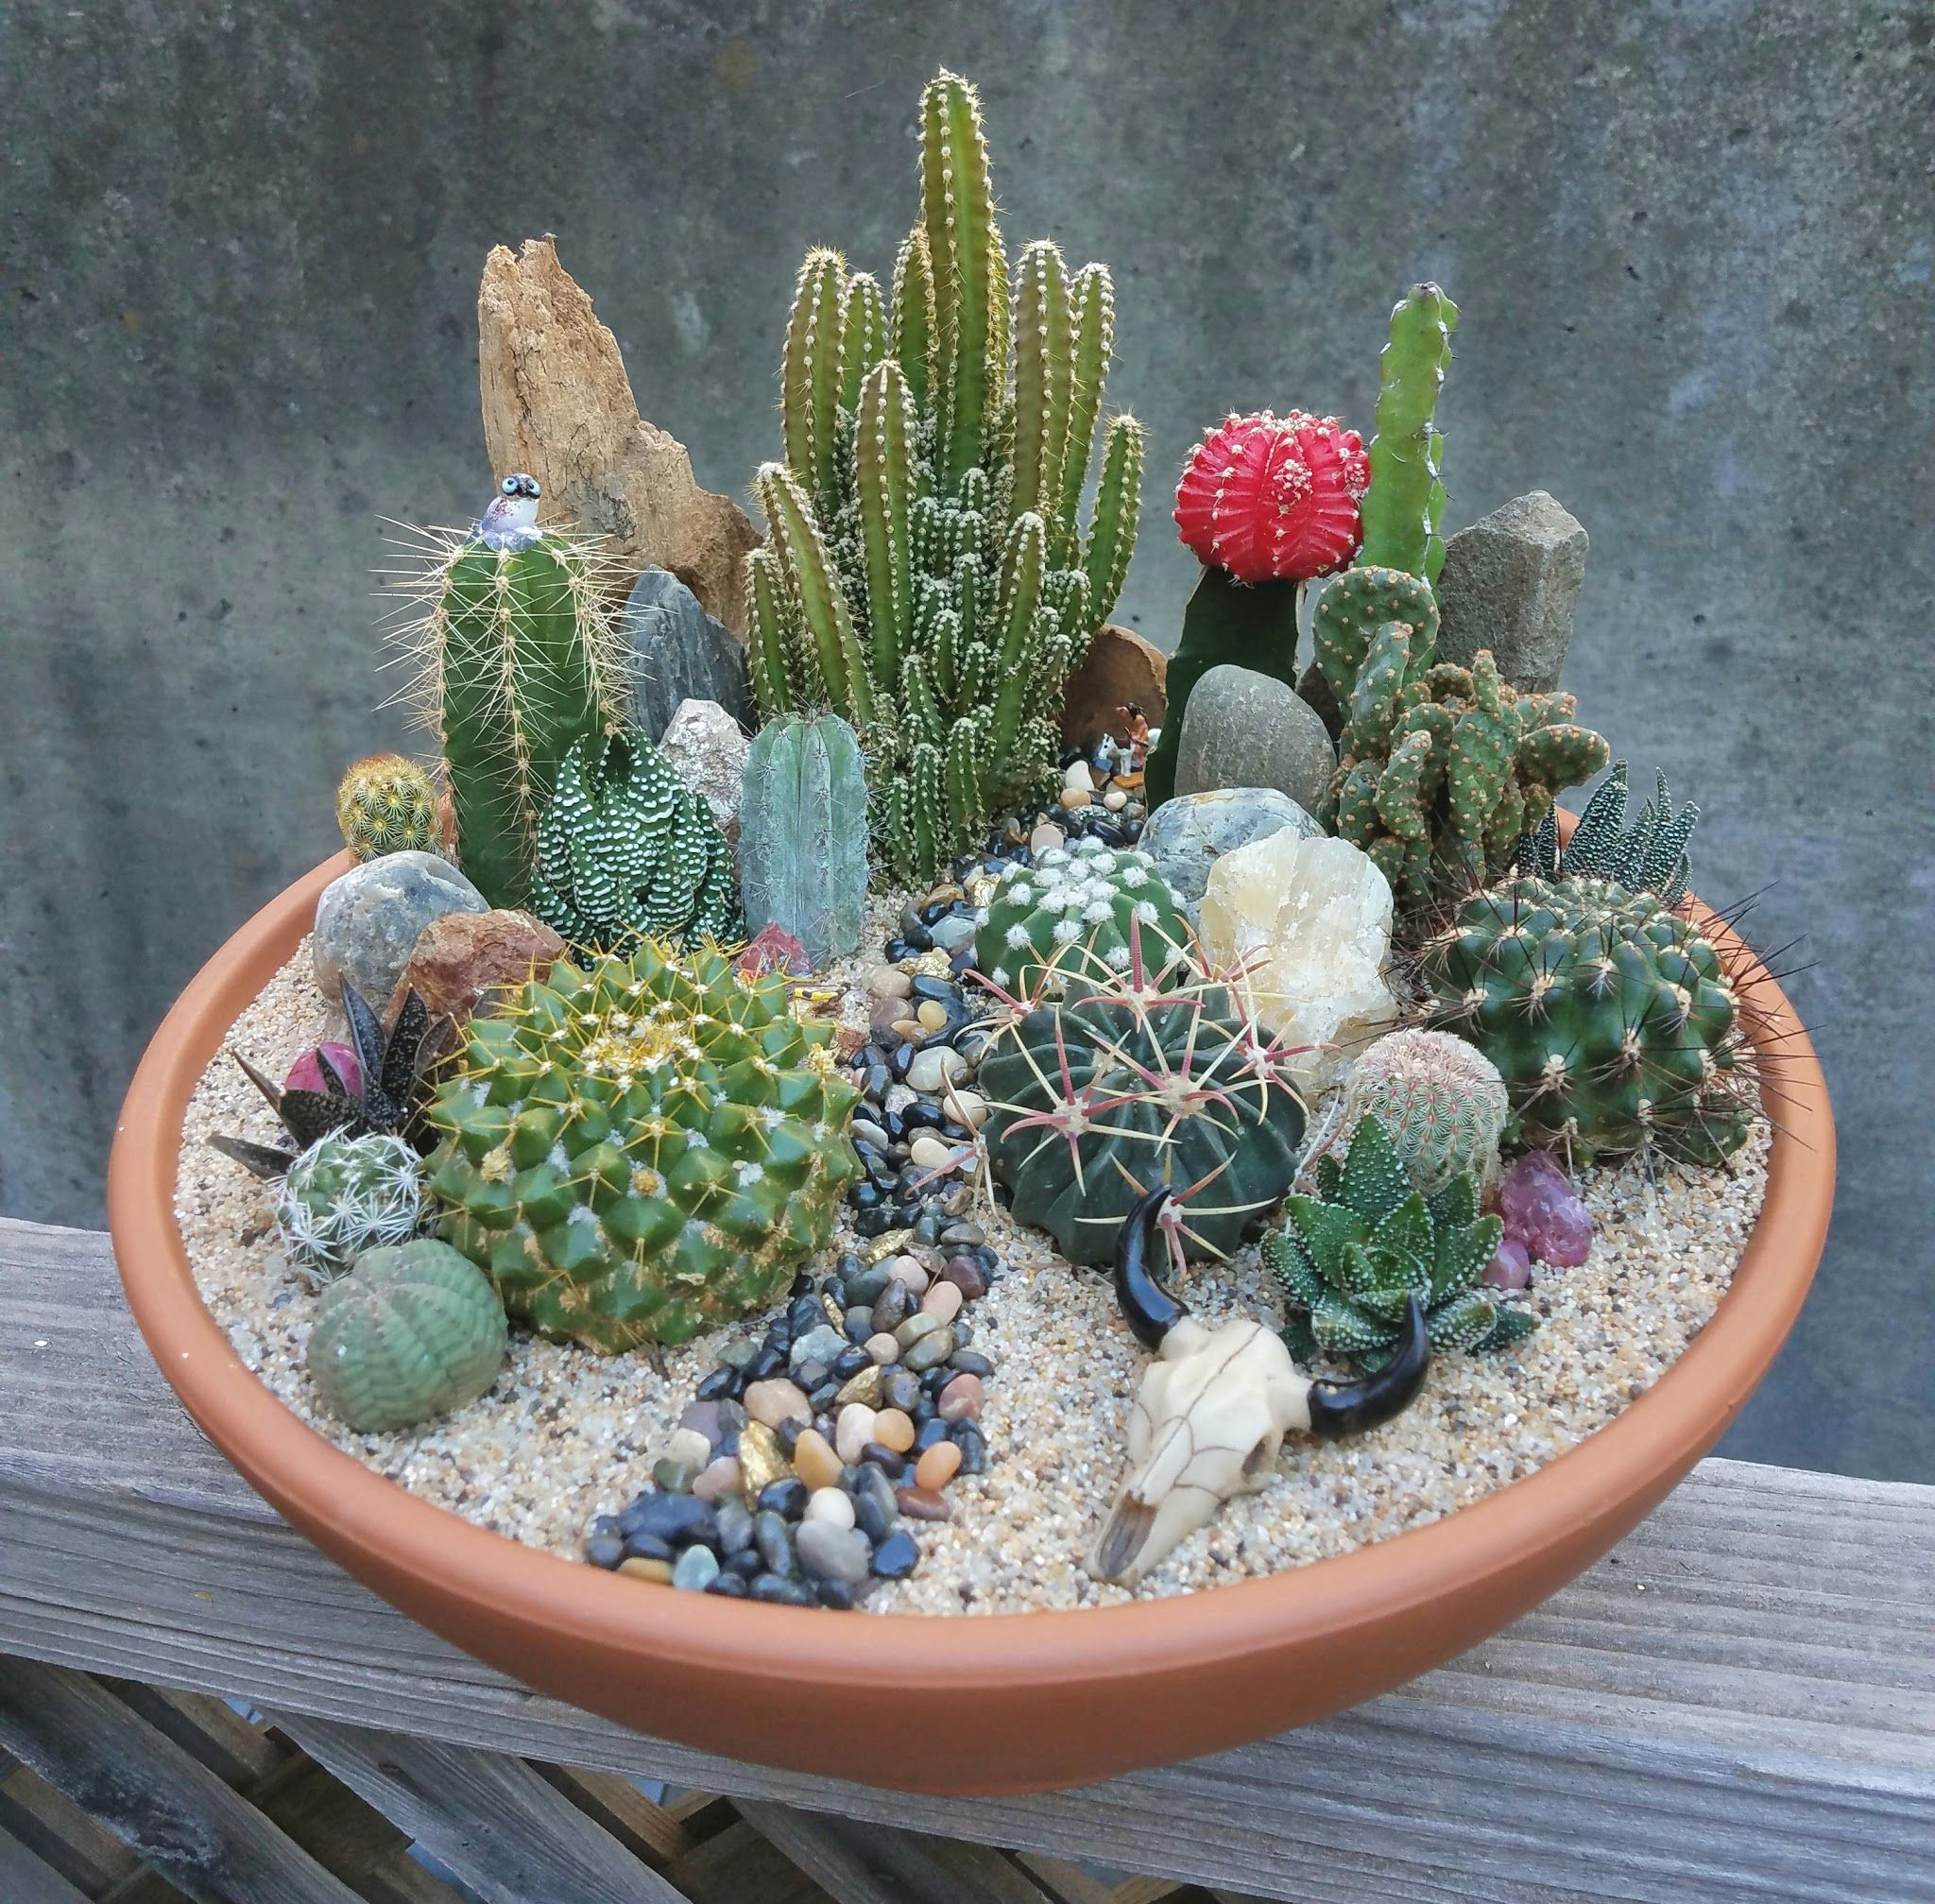 Cactus Garden Mini Cactus Garden Cactus House Plants Indoor